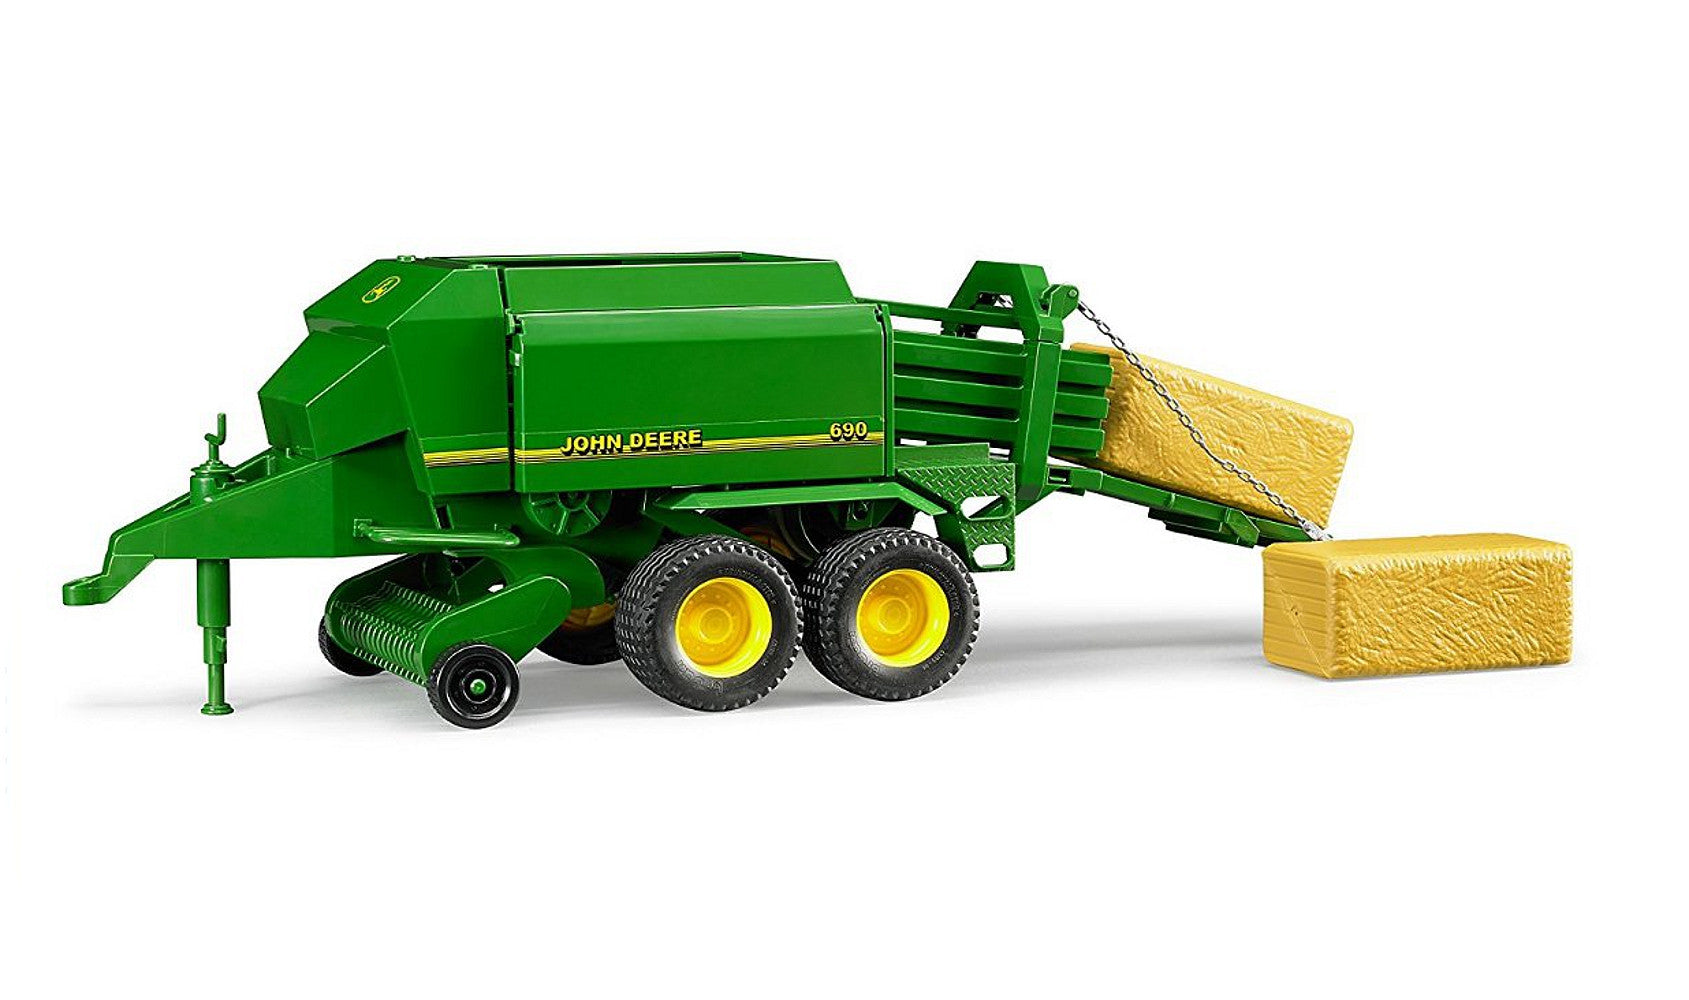 1/16 Scale John Deere 690 Large Square Baler Toy by Bruder - LP53289